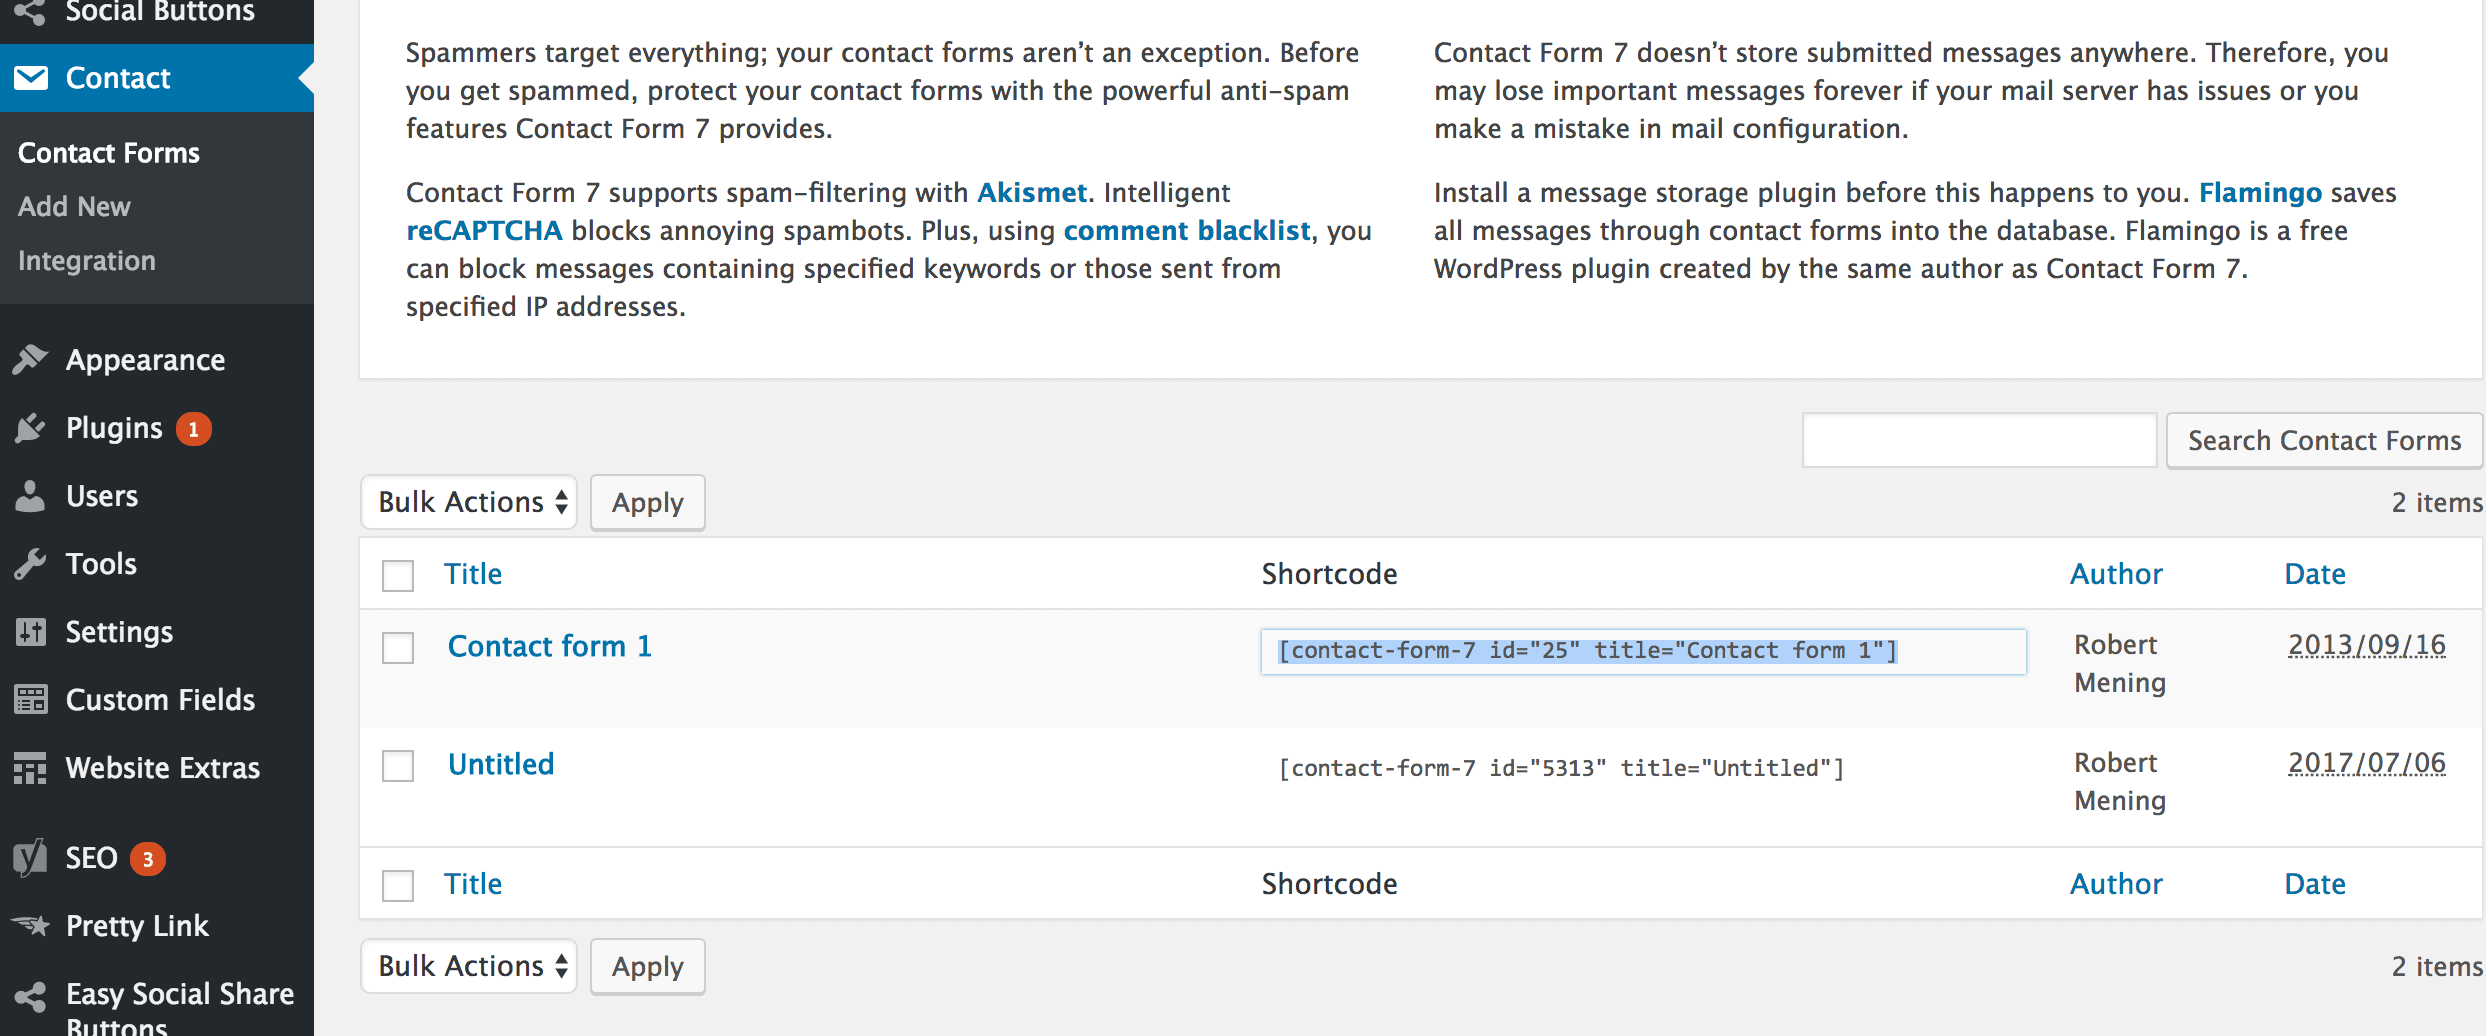 How to Add a Contact Form to Your WordPress Website/Blog